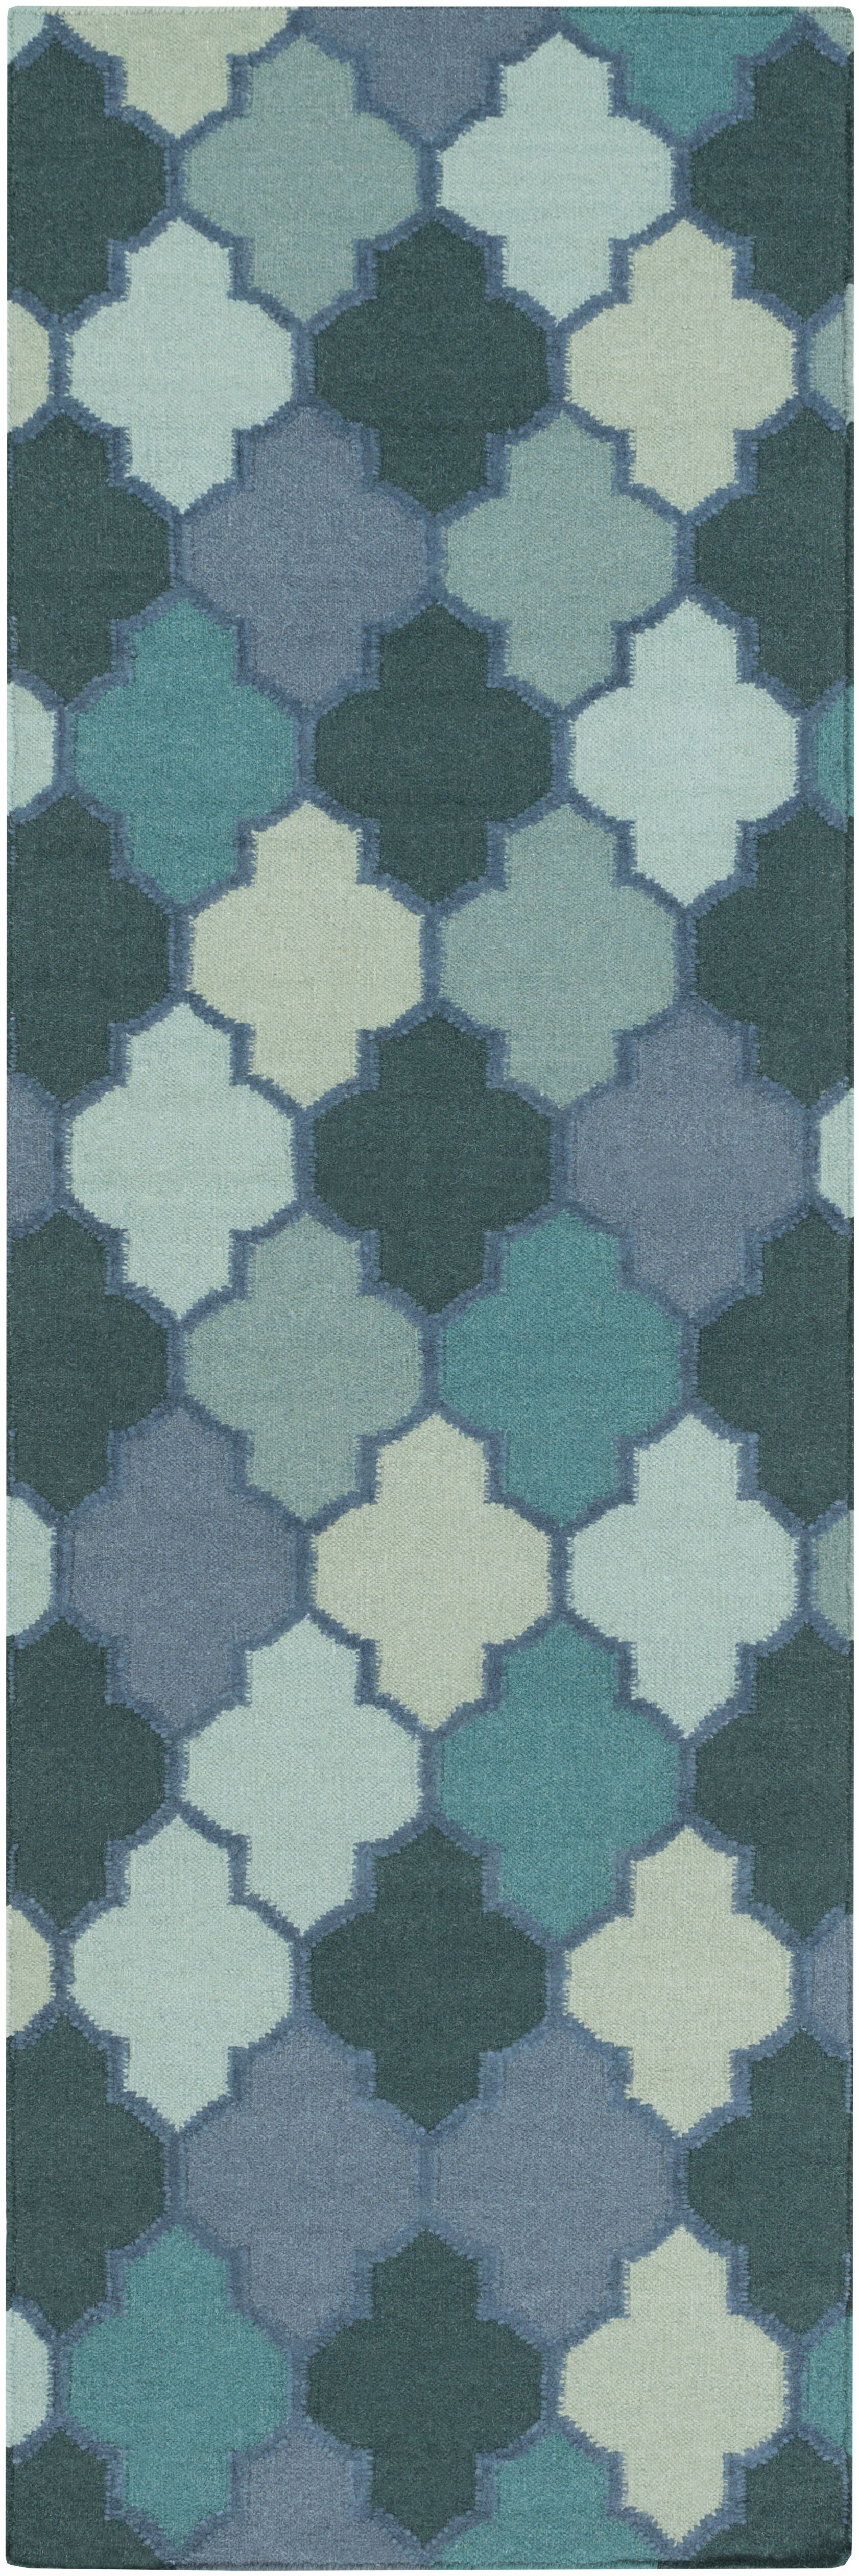 Crispin Mint Geometric Area Rug Rug Size: Runner 2'6